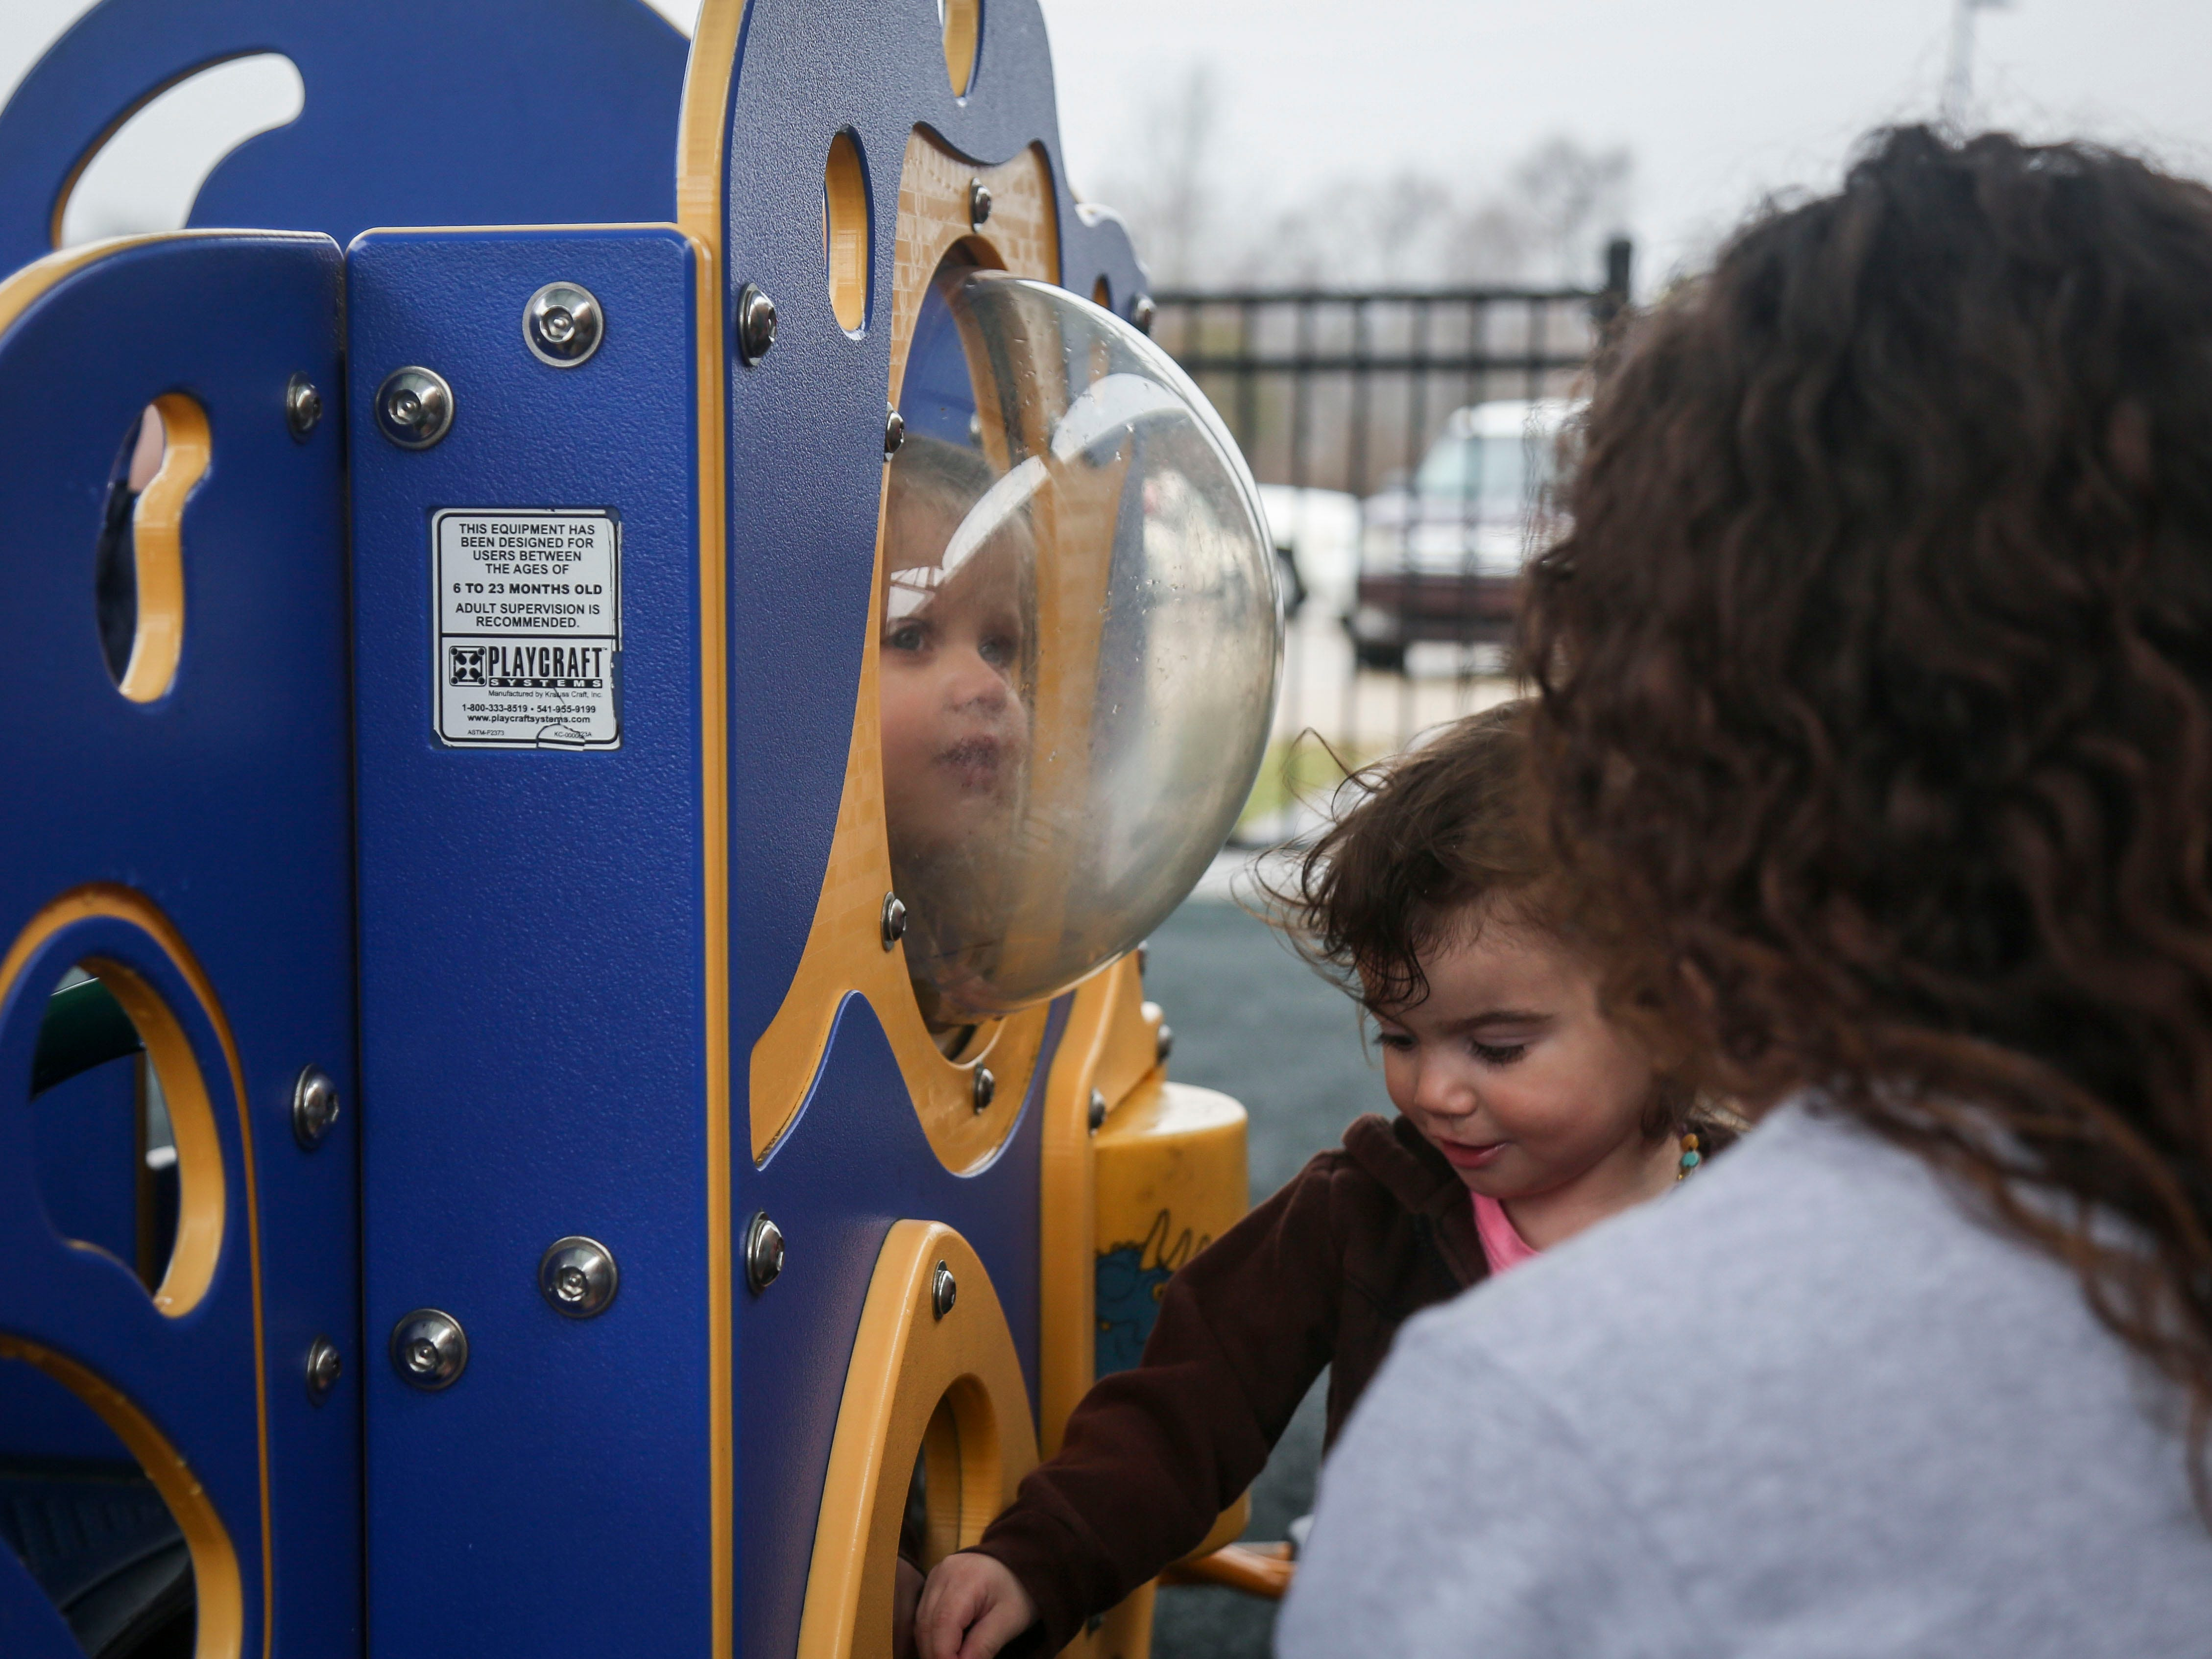 Gabriella Greenwell, Instructional and Family Services Manager of OVEC Bullitt County Head Start/Early Head Startt, plays with Hadley Caulk, middle, during outdoor playtime in the Early Head Start program at Brooks Elementary School in Brooks, Ky. on Feb. 5, 2019.